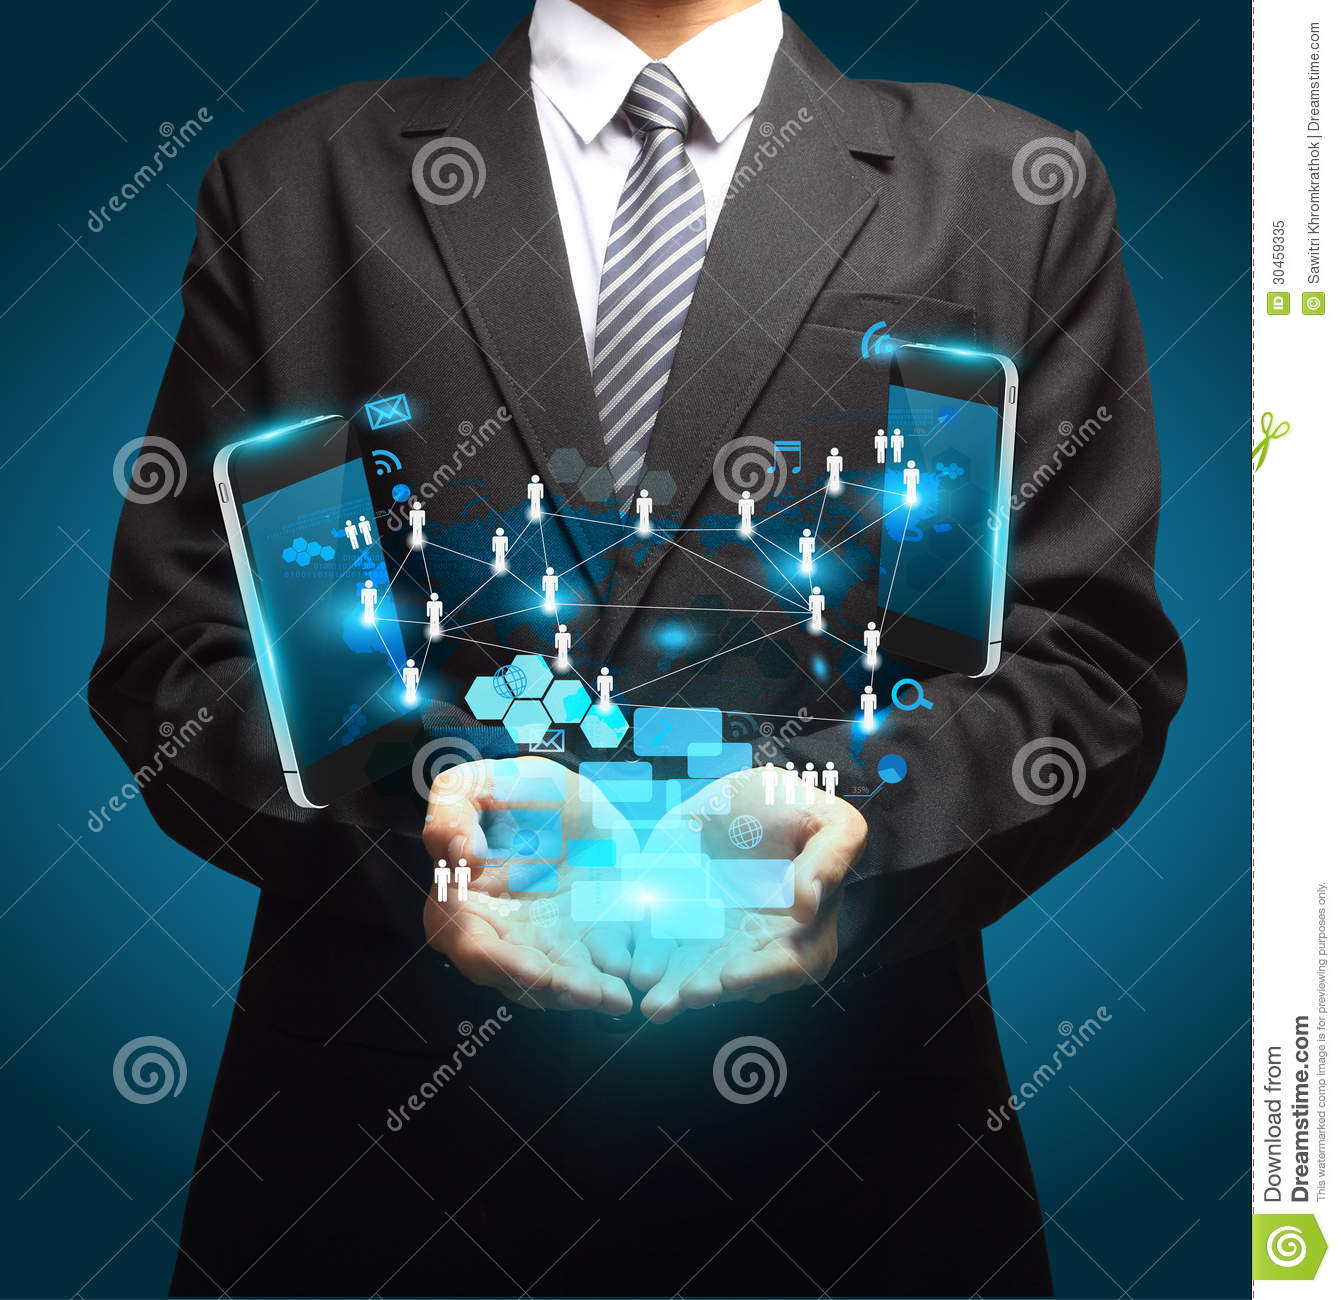 Mobile Phones Technology Business In Hand Stock